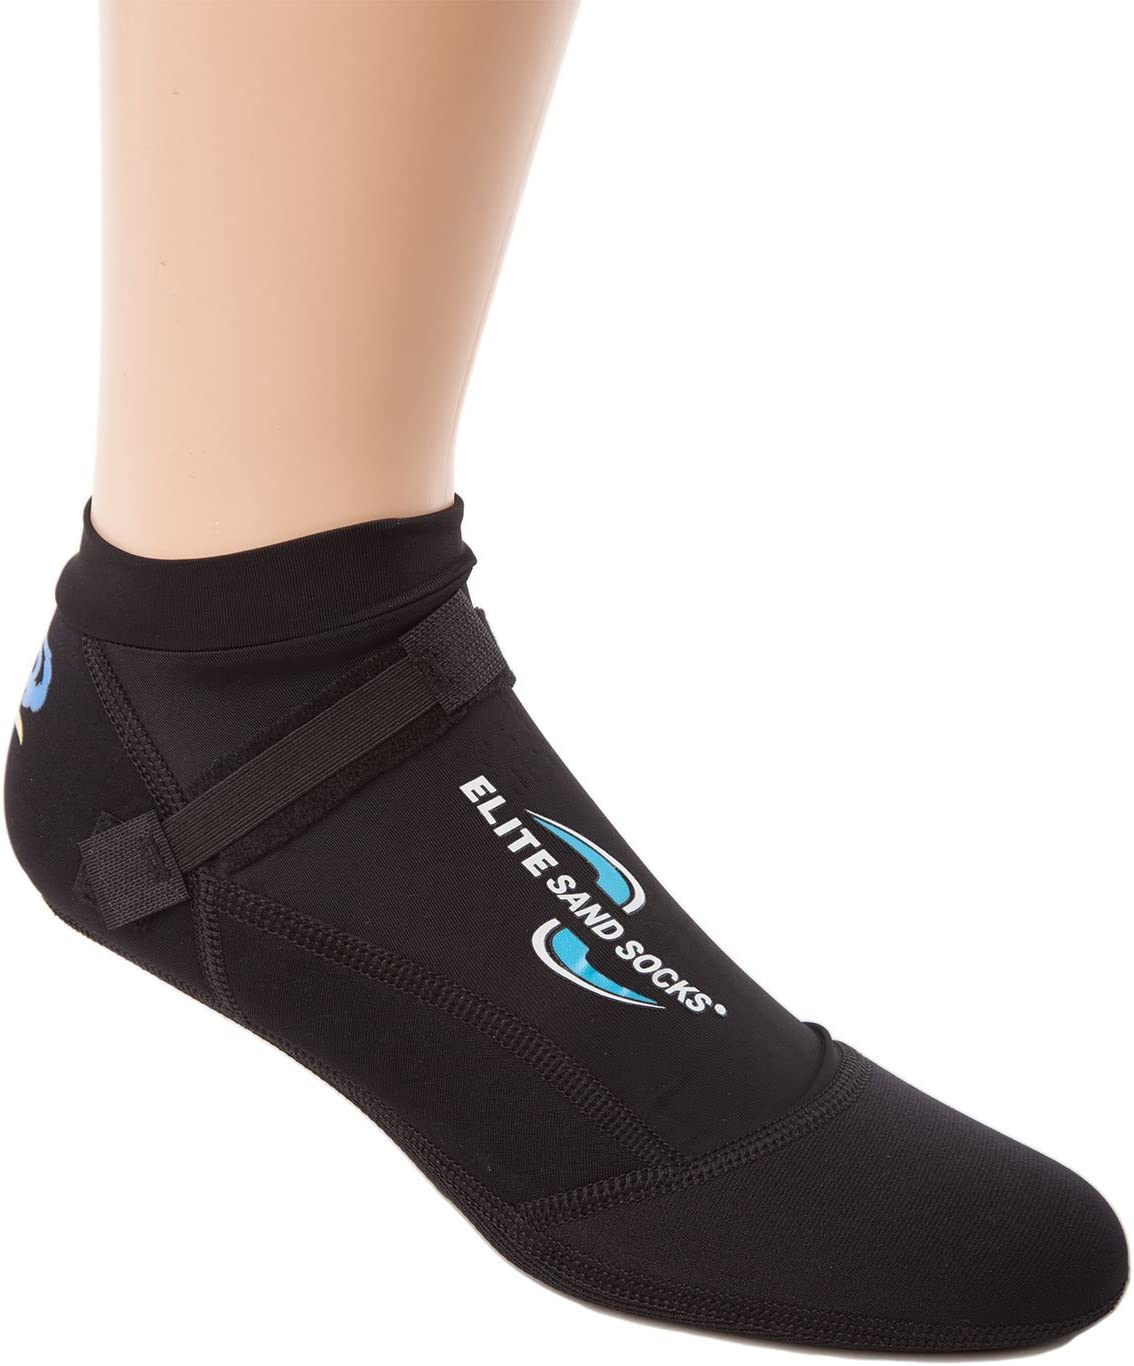 Amazon Com Sand Socks Vincere Elite For Snorkeling Beach Soccer Sand Volleyball Sports Outdoors